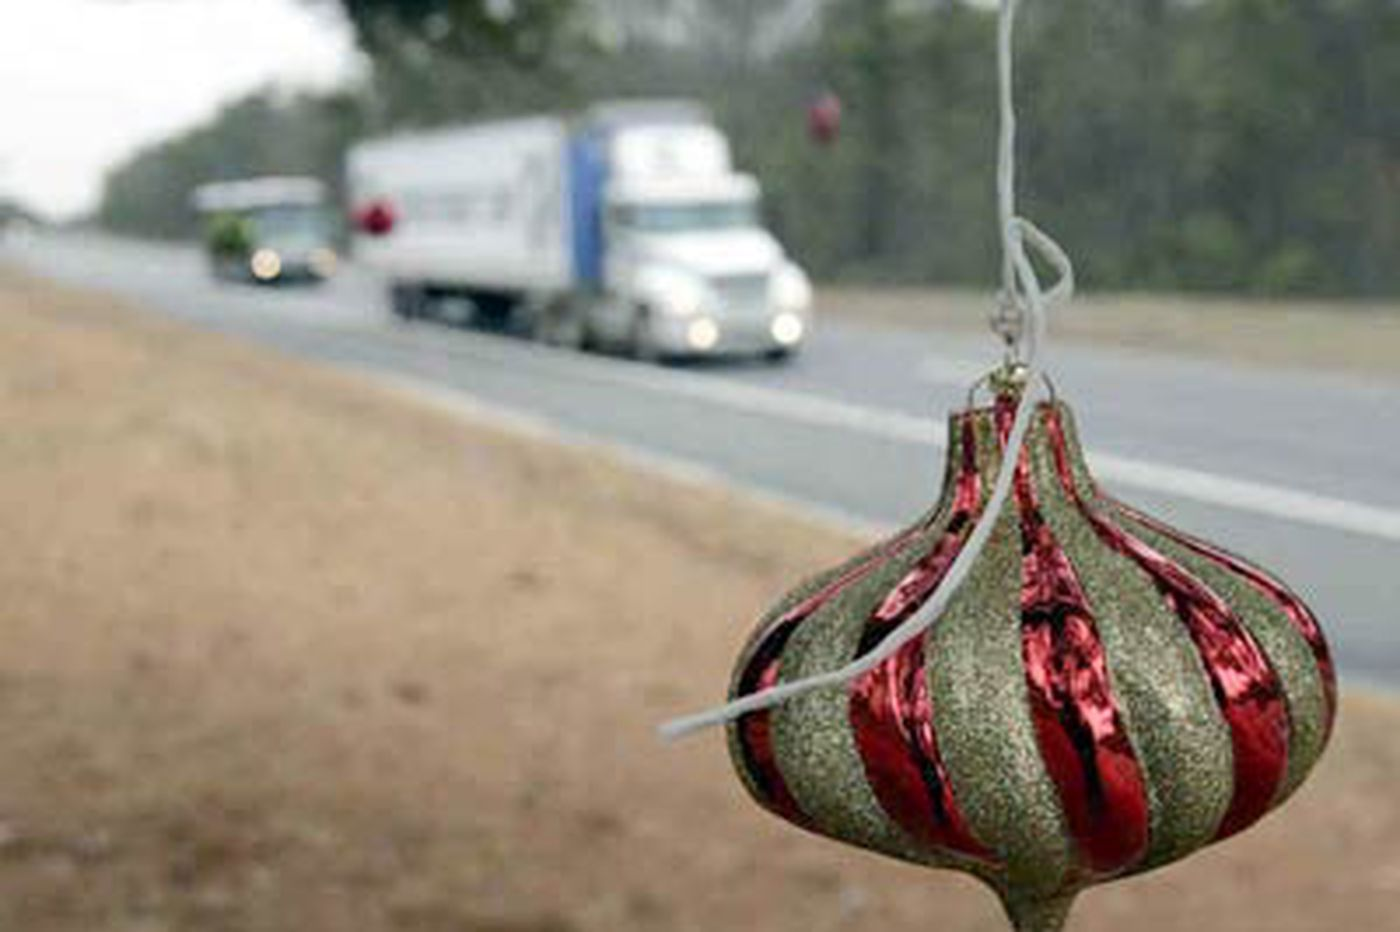 'Secret Santa' decorates Garden State Parkway